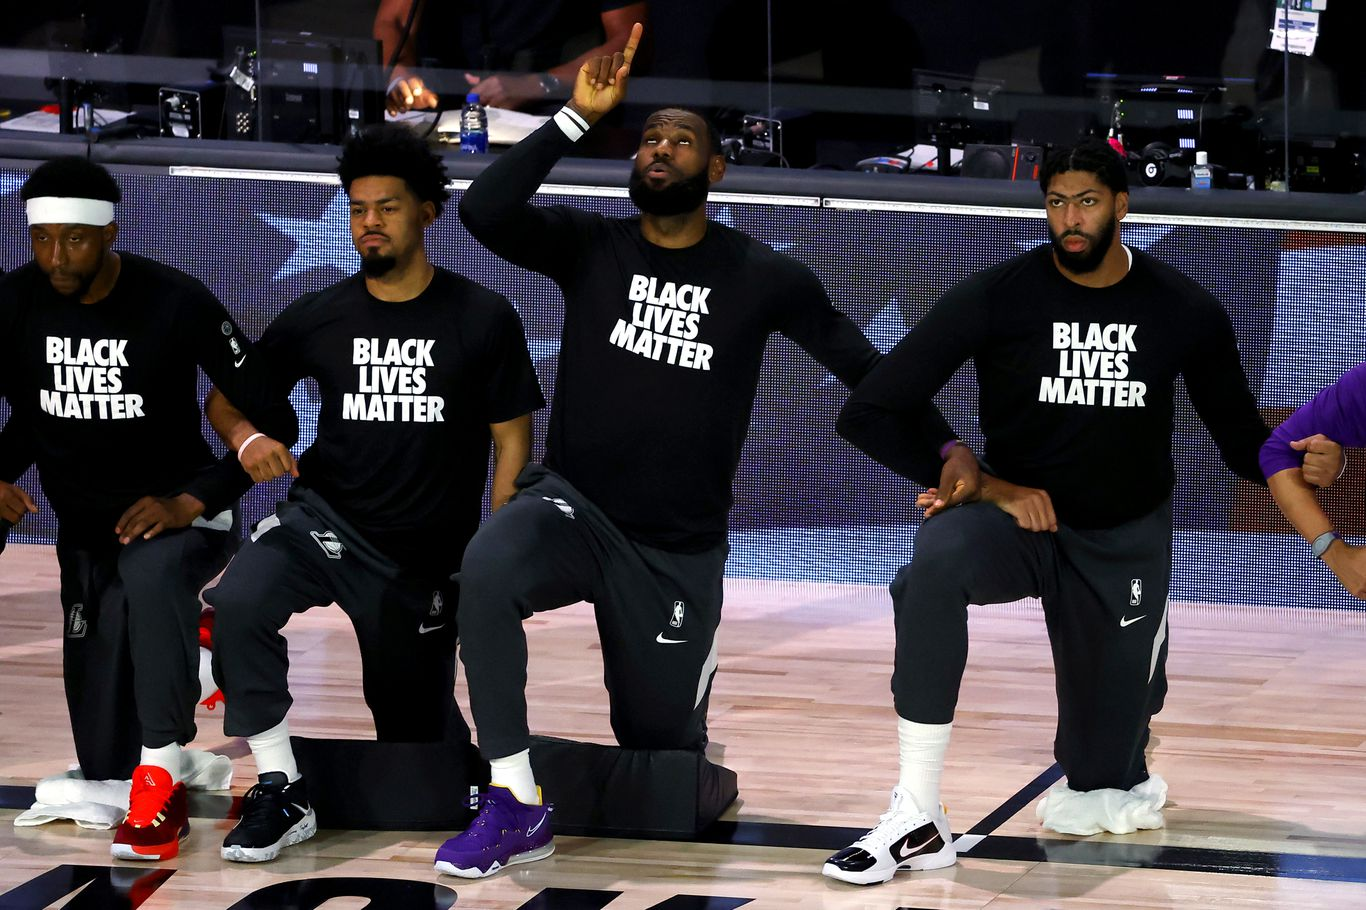 """""""We could care less"""": LeBron James responds to Trump's vow to stop watching NBA over protests thumbnail"""